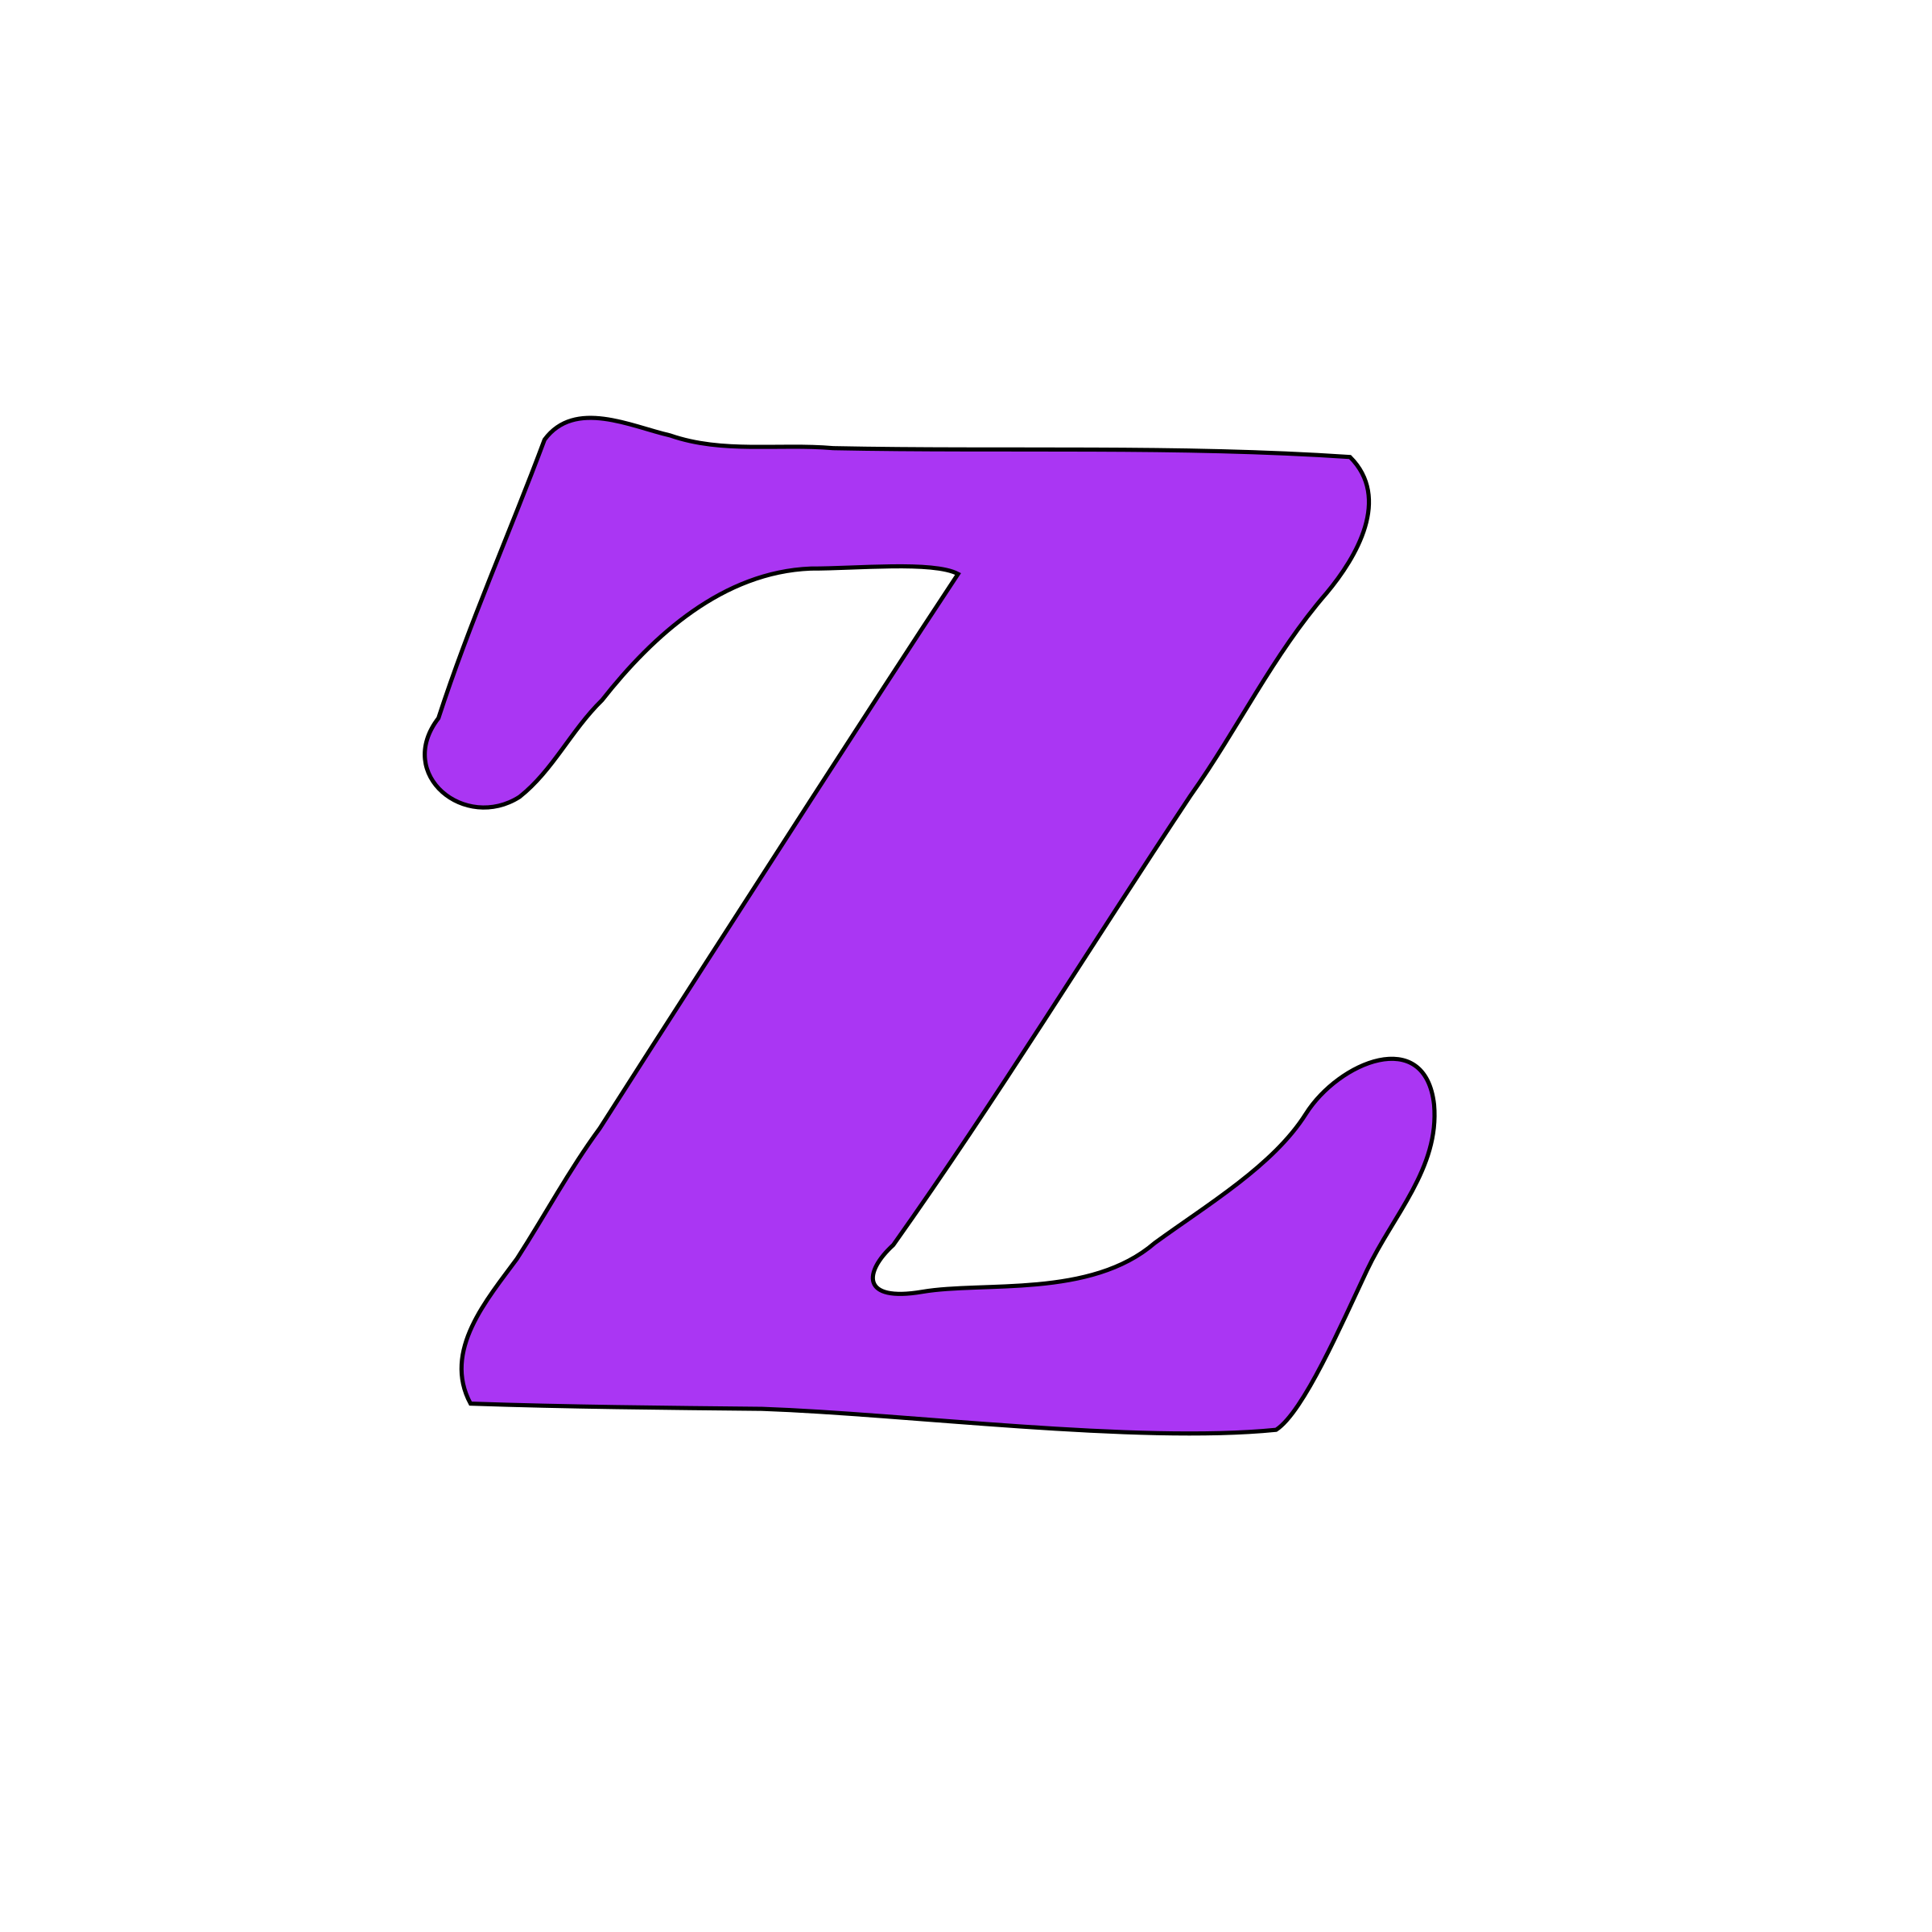 Z vector lowercase. Icons png free and